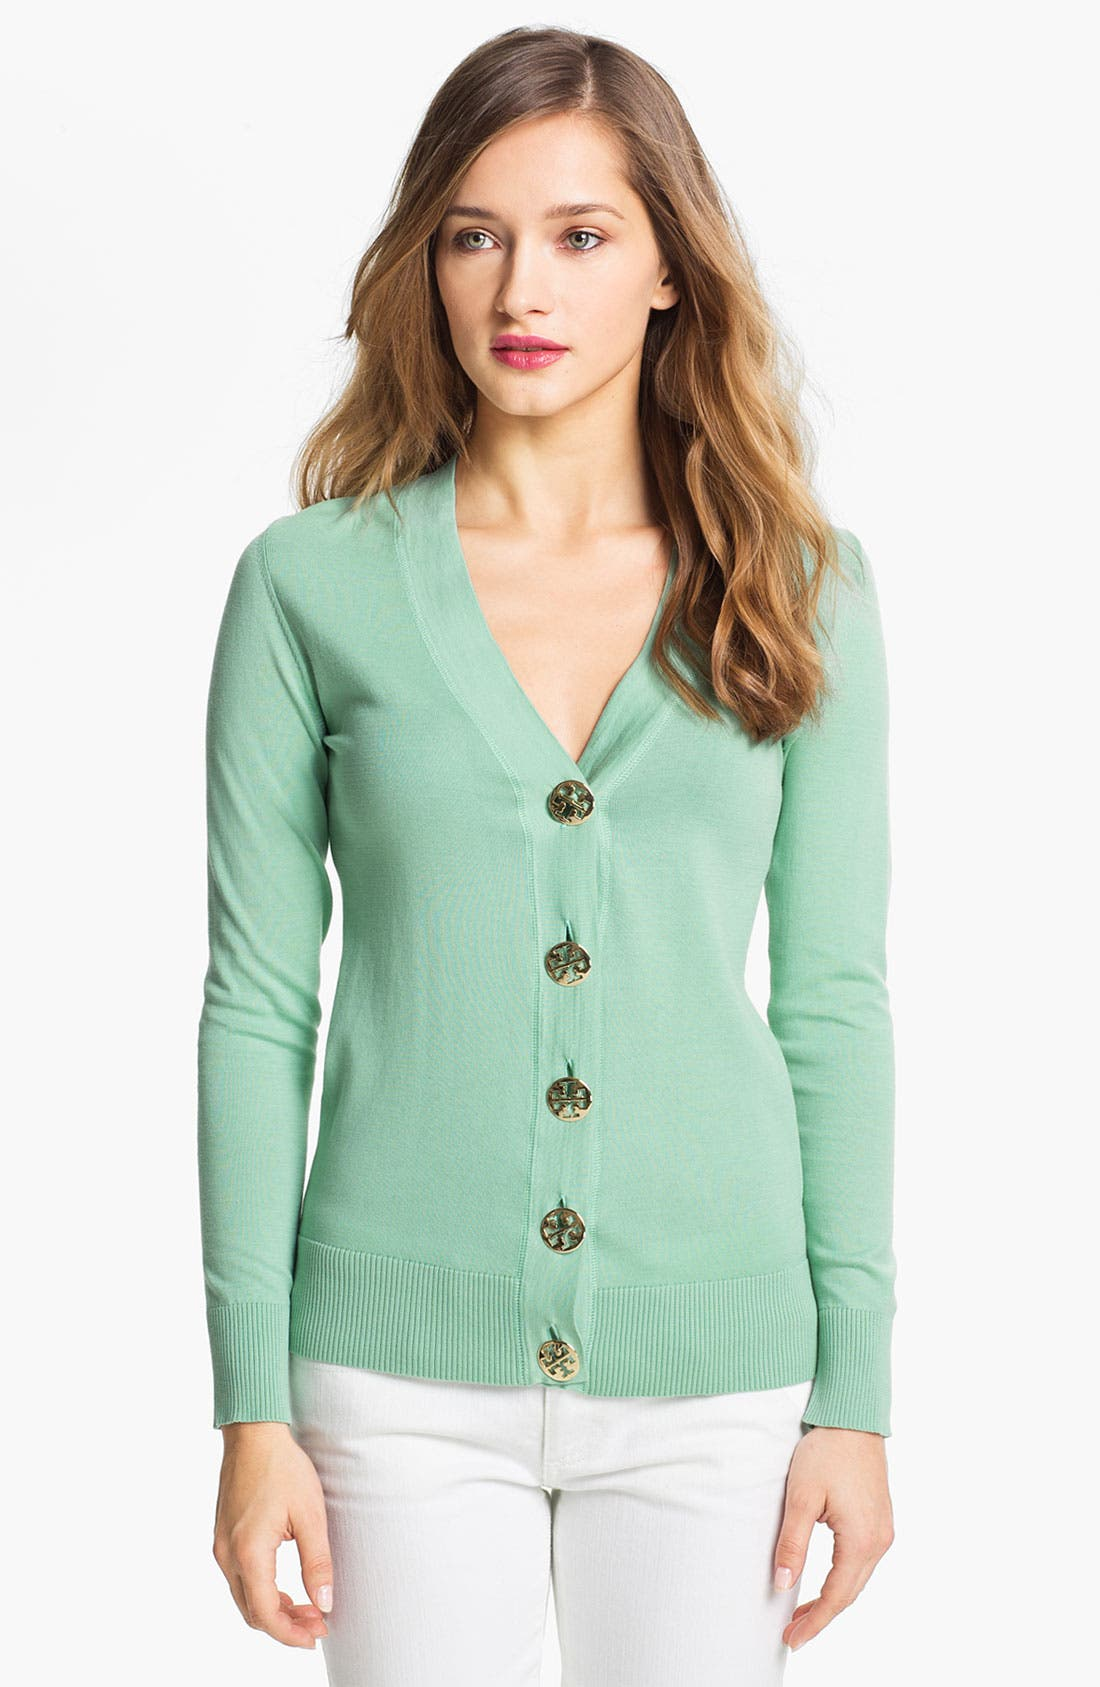 Alternate Image 1 Selected - Tory Burch 'Simone' Signature Button Cardigan